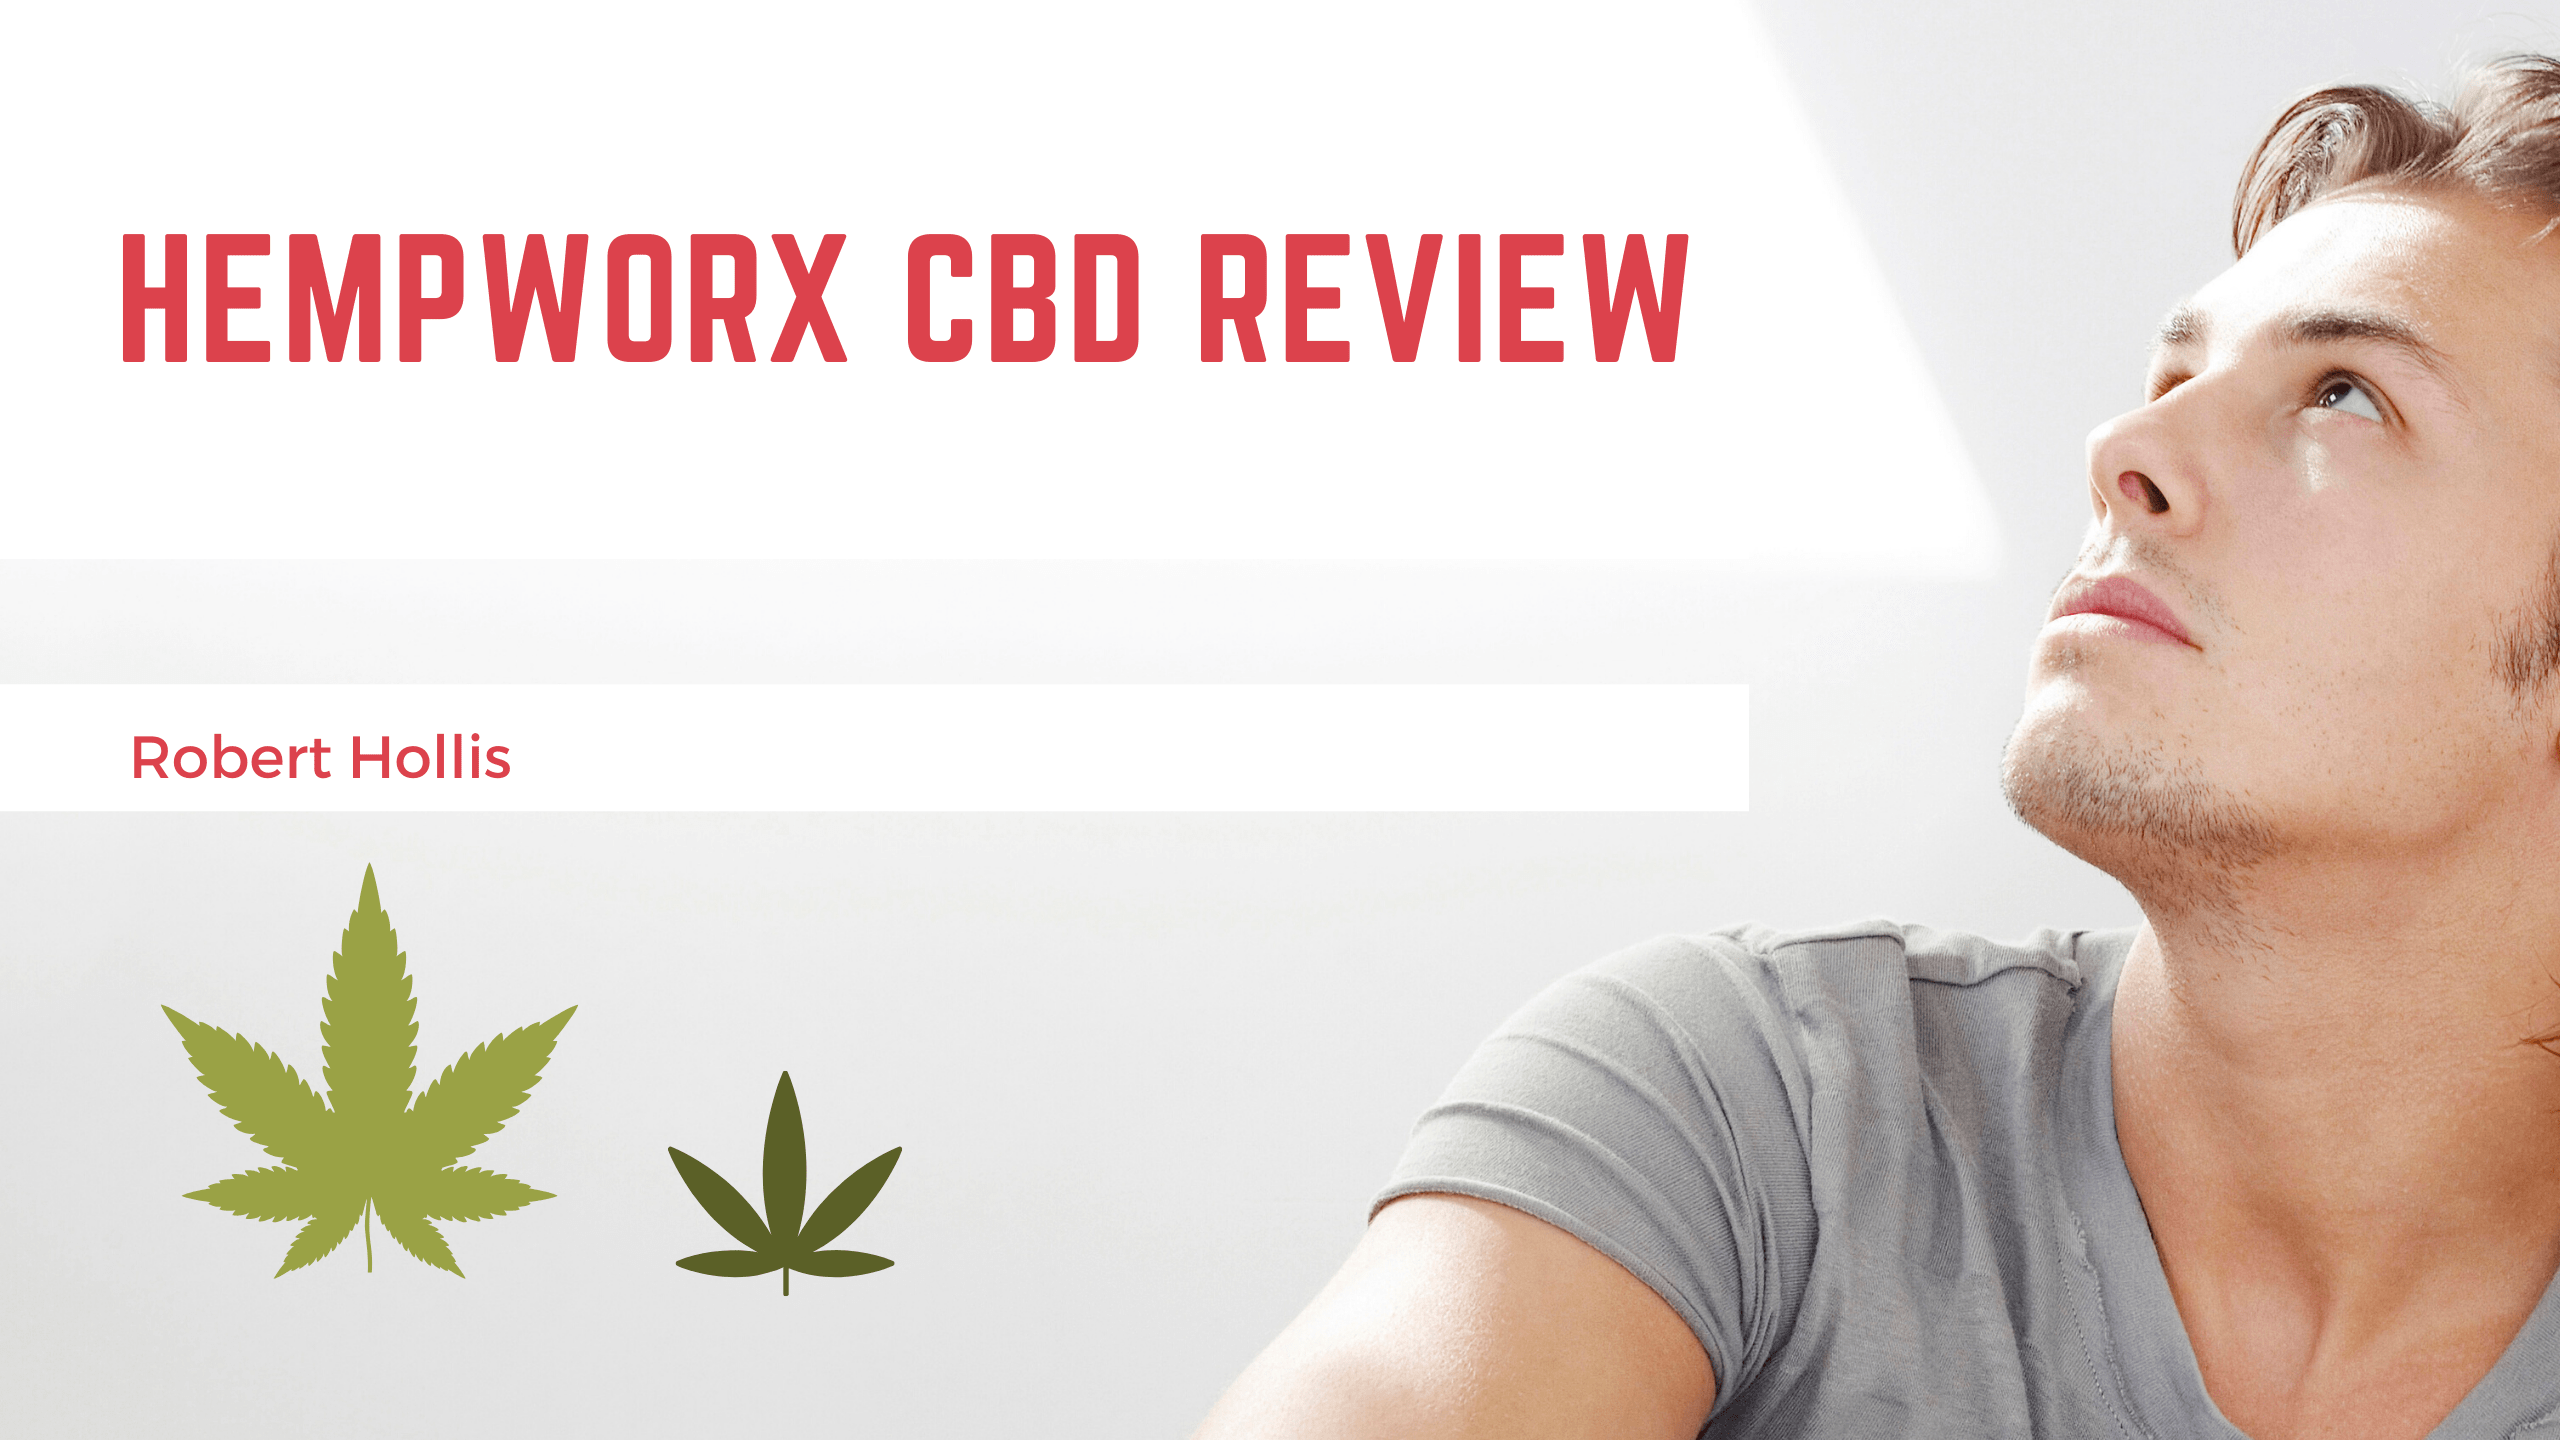 Robert Hollis Hempworx CBD Review POWERFUL!